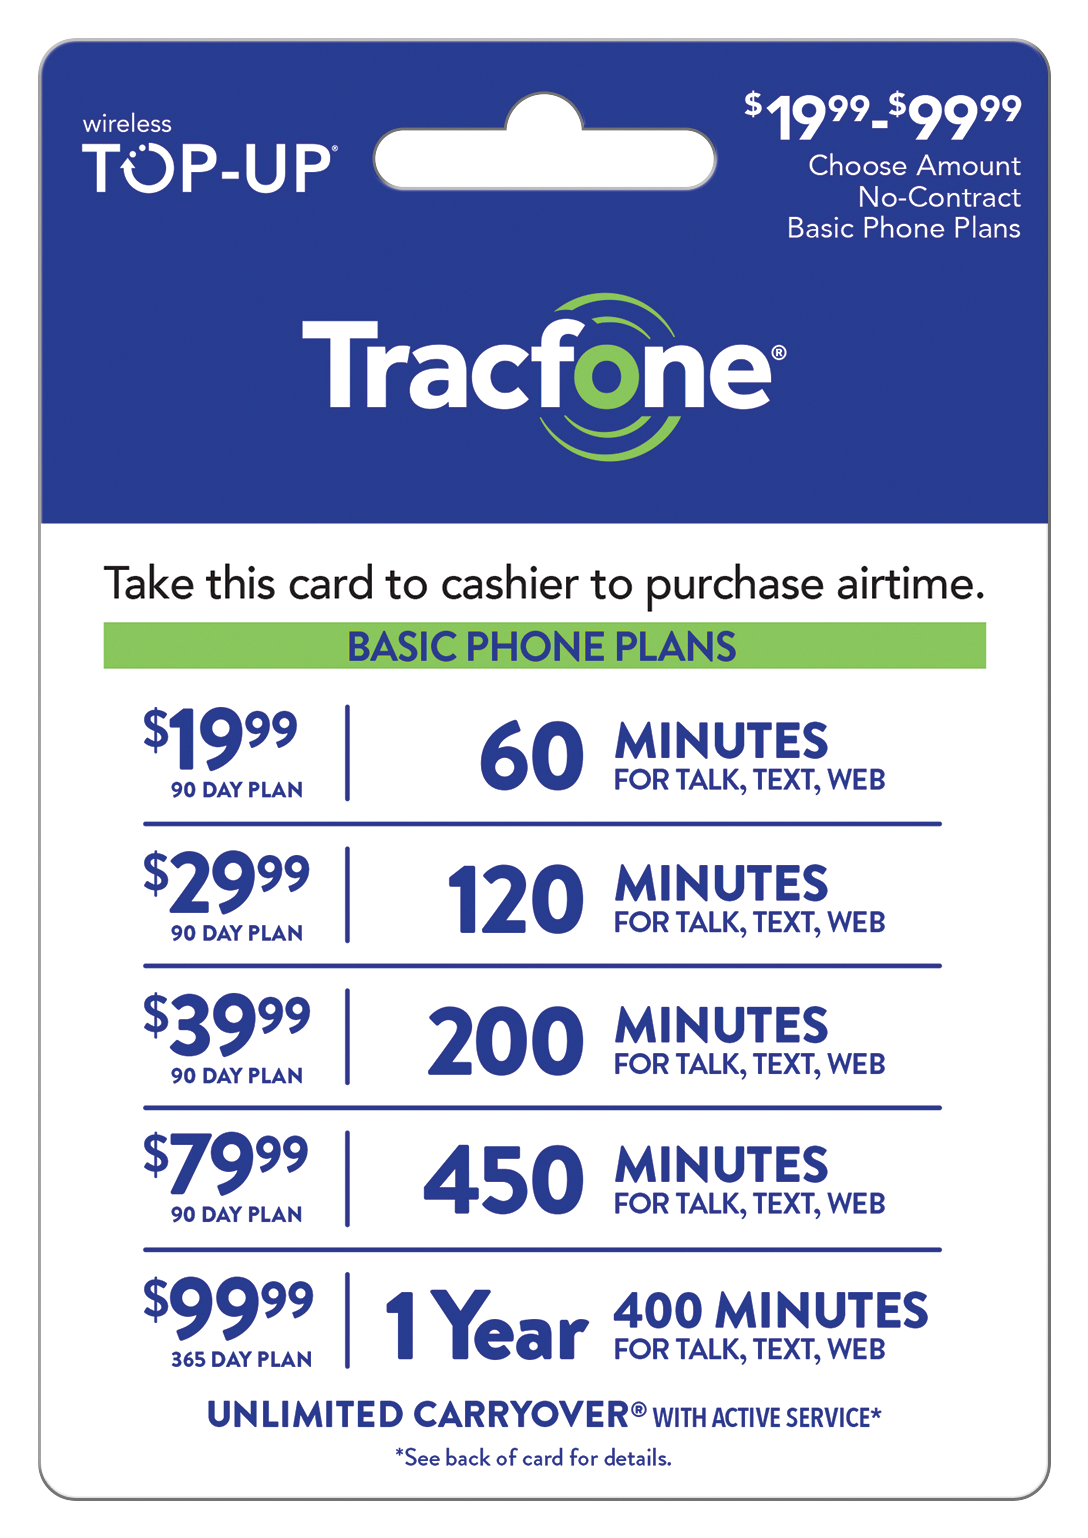 Tracfone_Chit_Basic_Phone_Plans_Multi_1999_2999_3999_7999_9999_021720.png